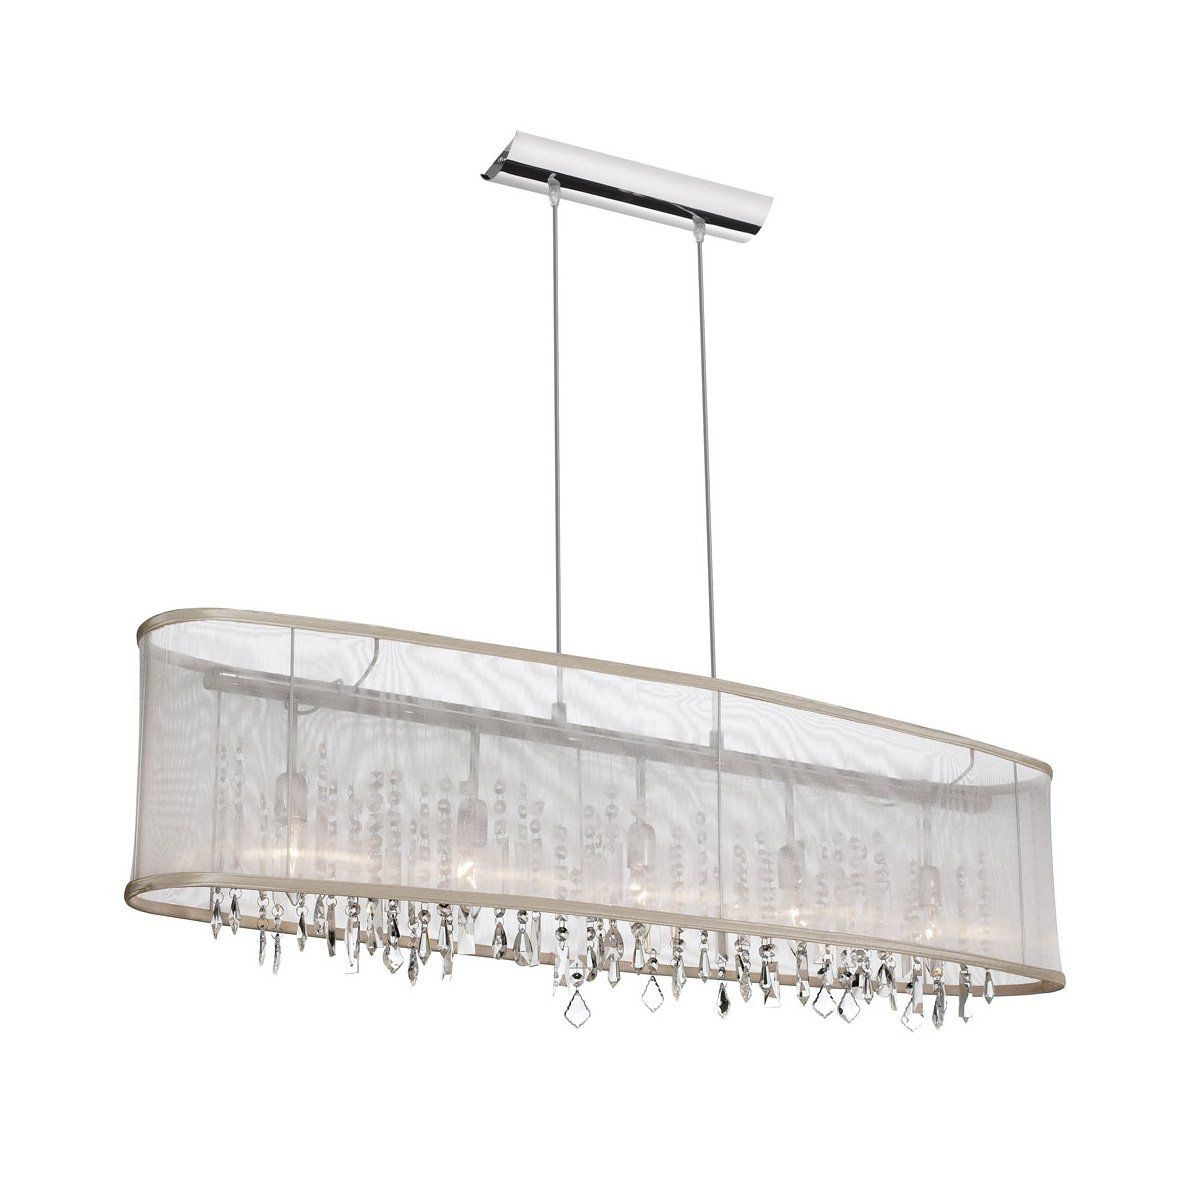 Rectangular organza shade crystal chandelier home design ideas dainolite 85303a 46 117 5 light crystal island pendant with organza aloadofball Gallery